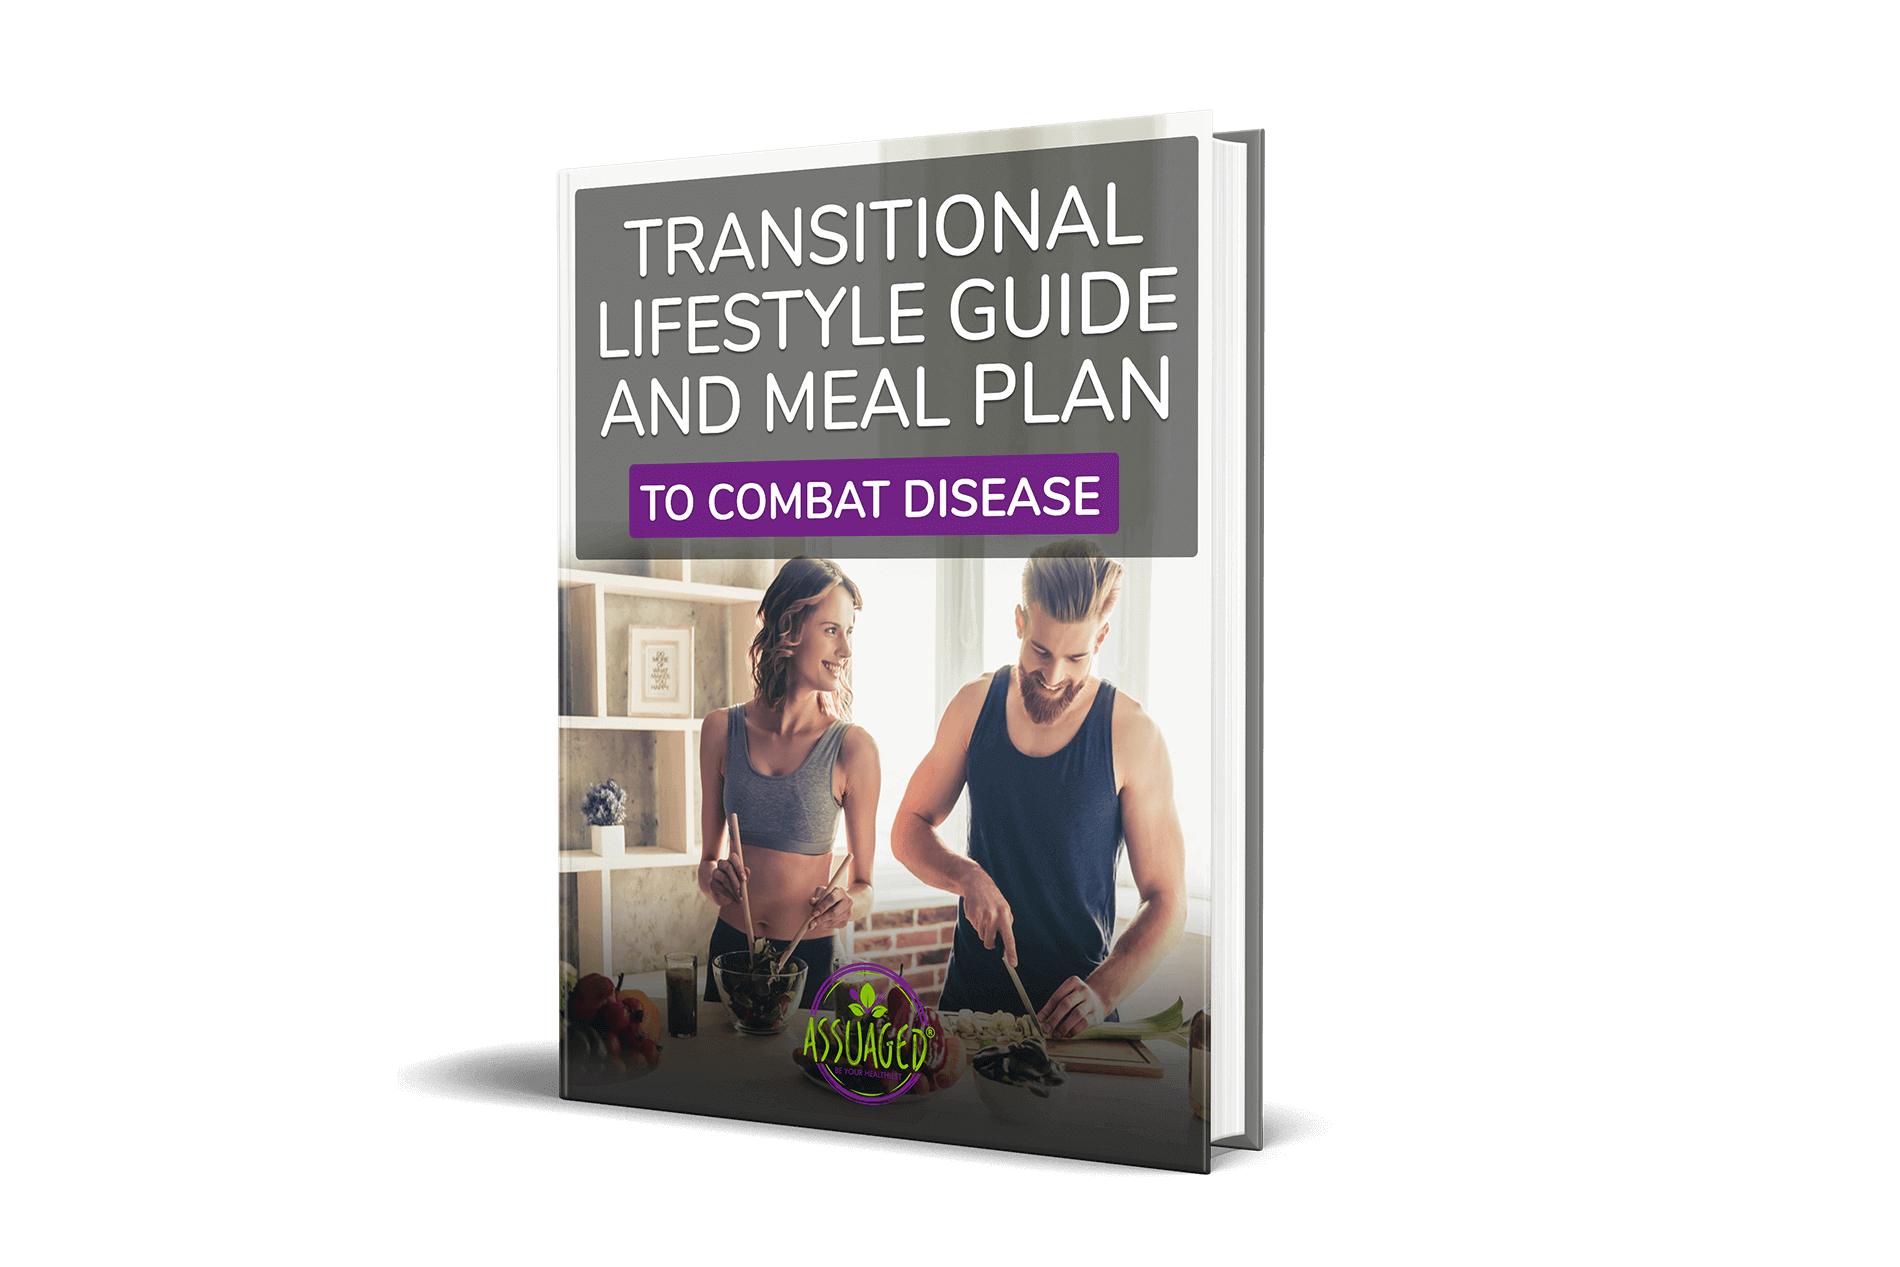 Assuaged-Meal-Plan-&-Lifestyle-Guide-for-General-Chronic-Disease-3D